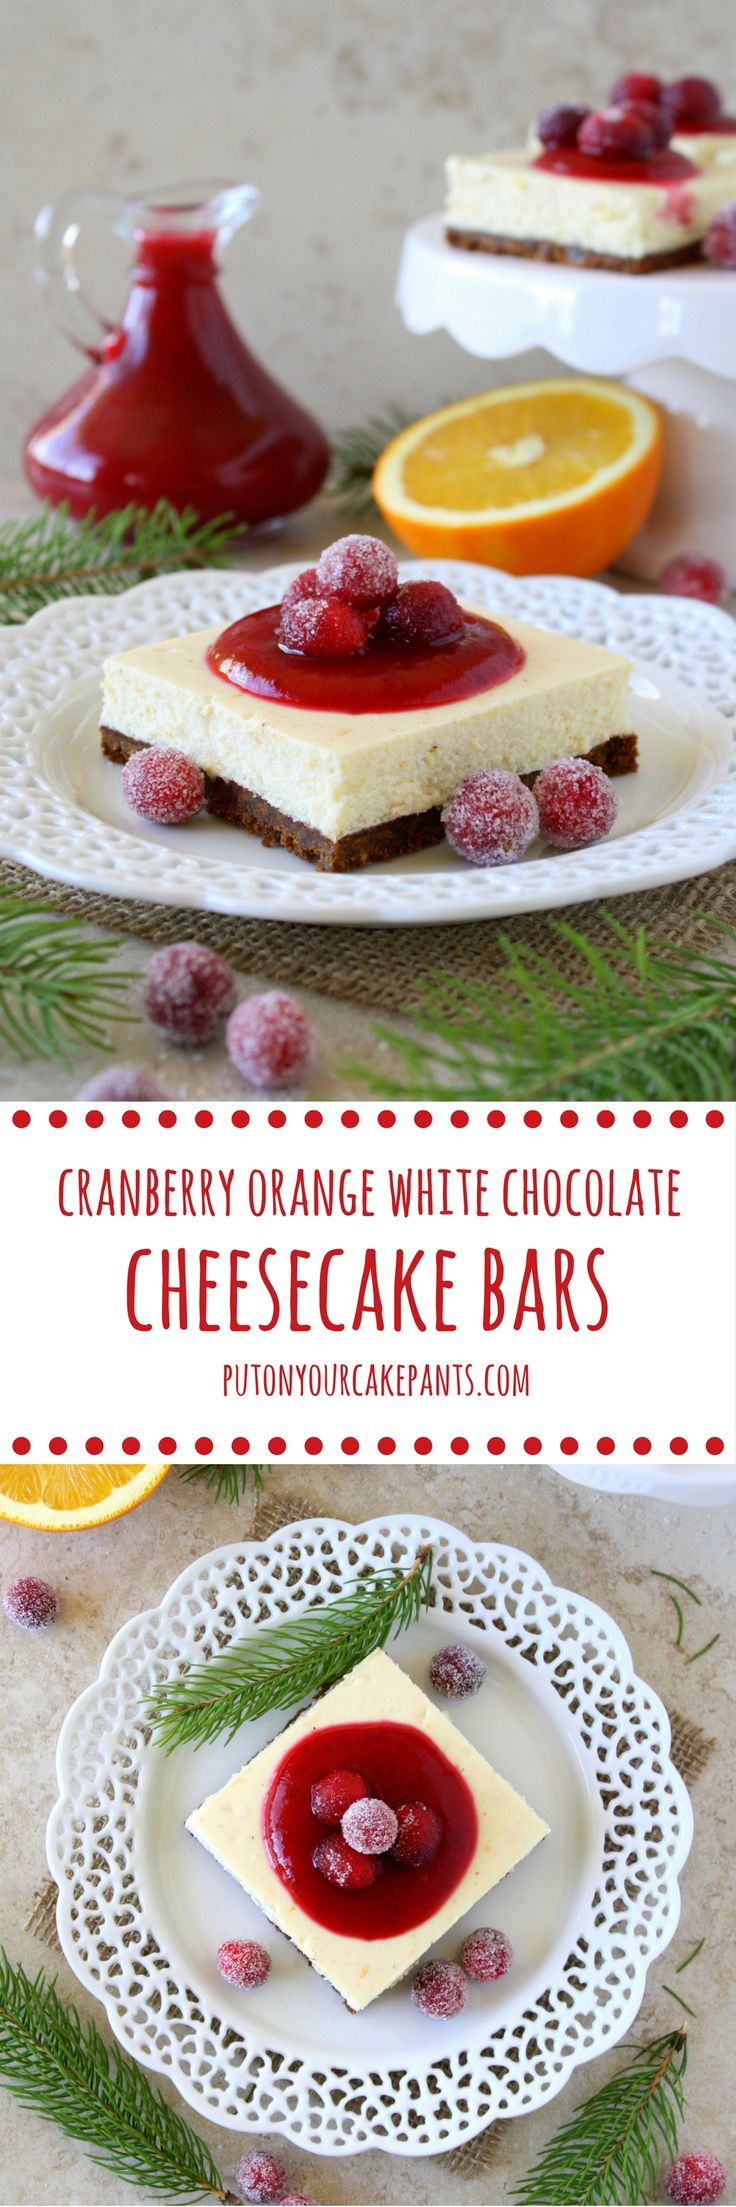 These cranberry orange white chocolate cheesecake bars look so good. I ...